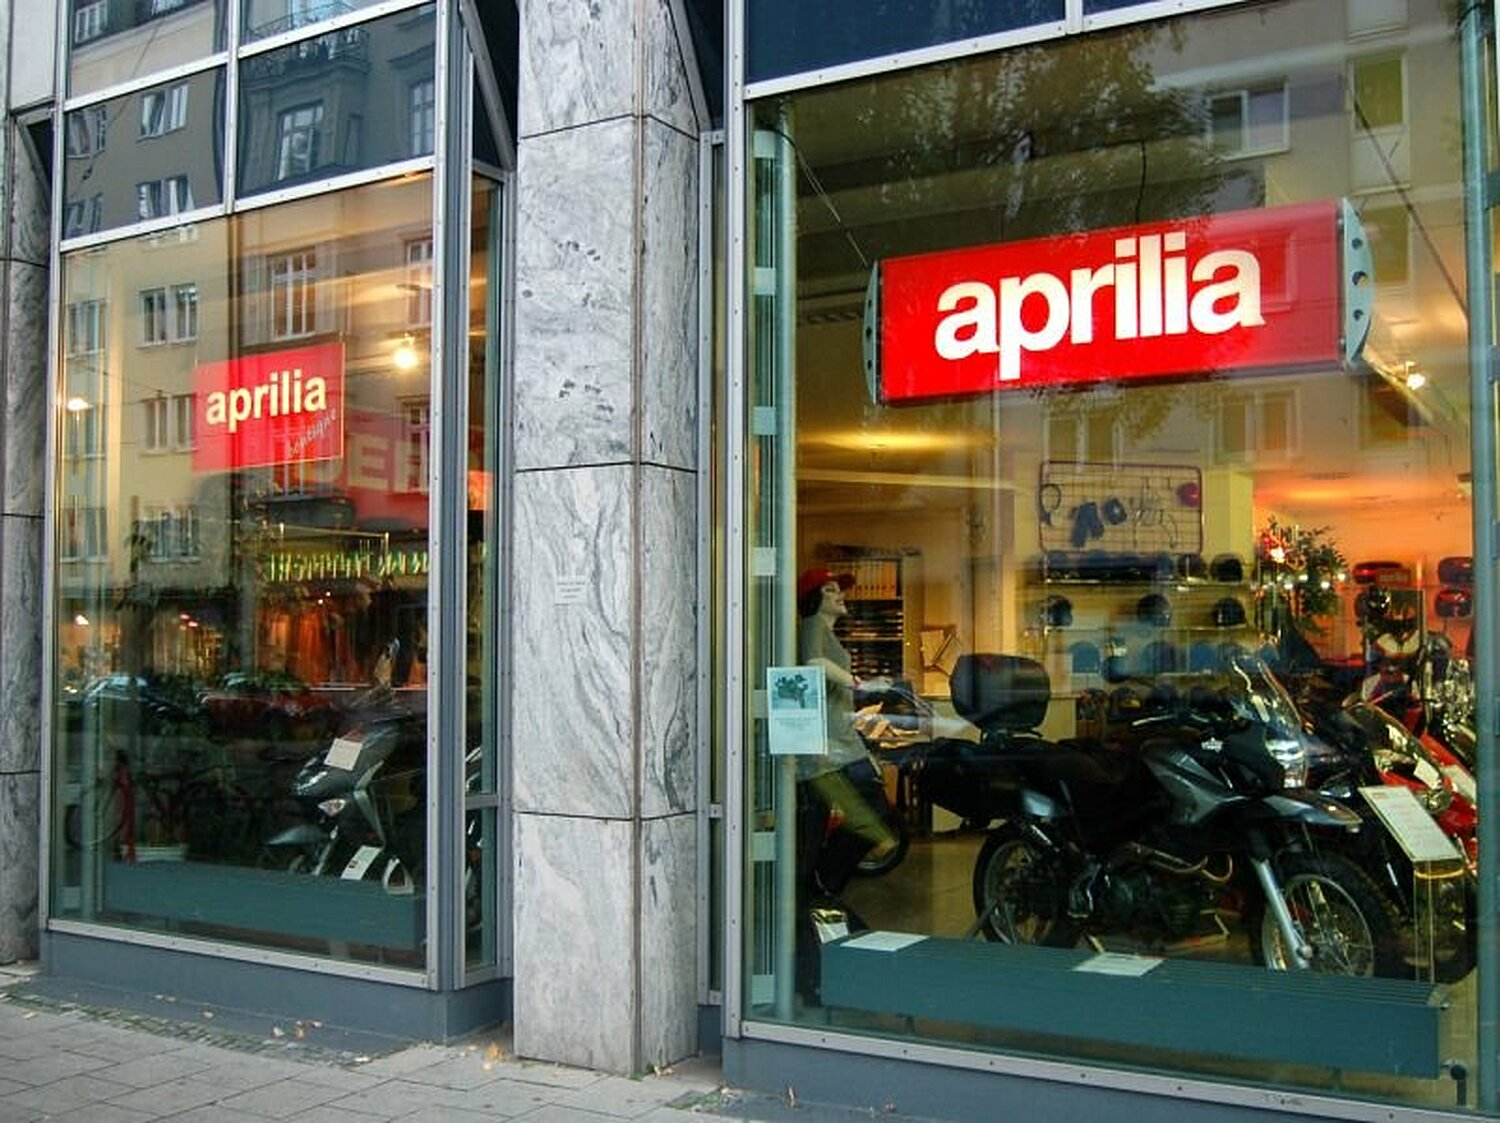 aprilia boutique rumfordstr glockenbachviertel m nchen aprilia boutique willkommen. Black Bedroom Furniture Sets. Home Design Ideas